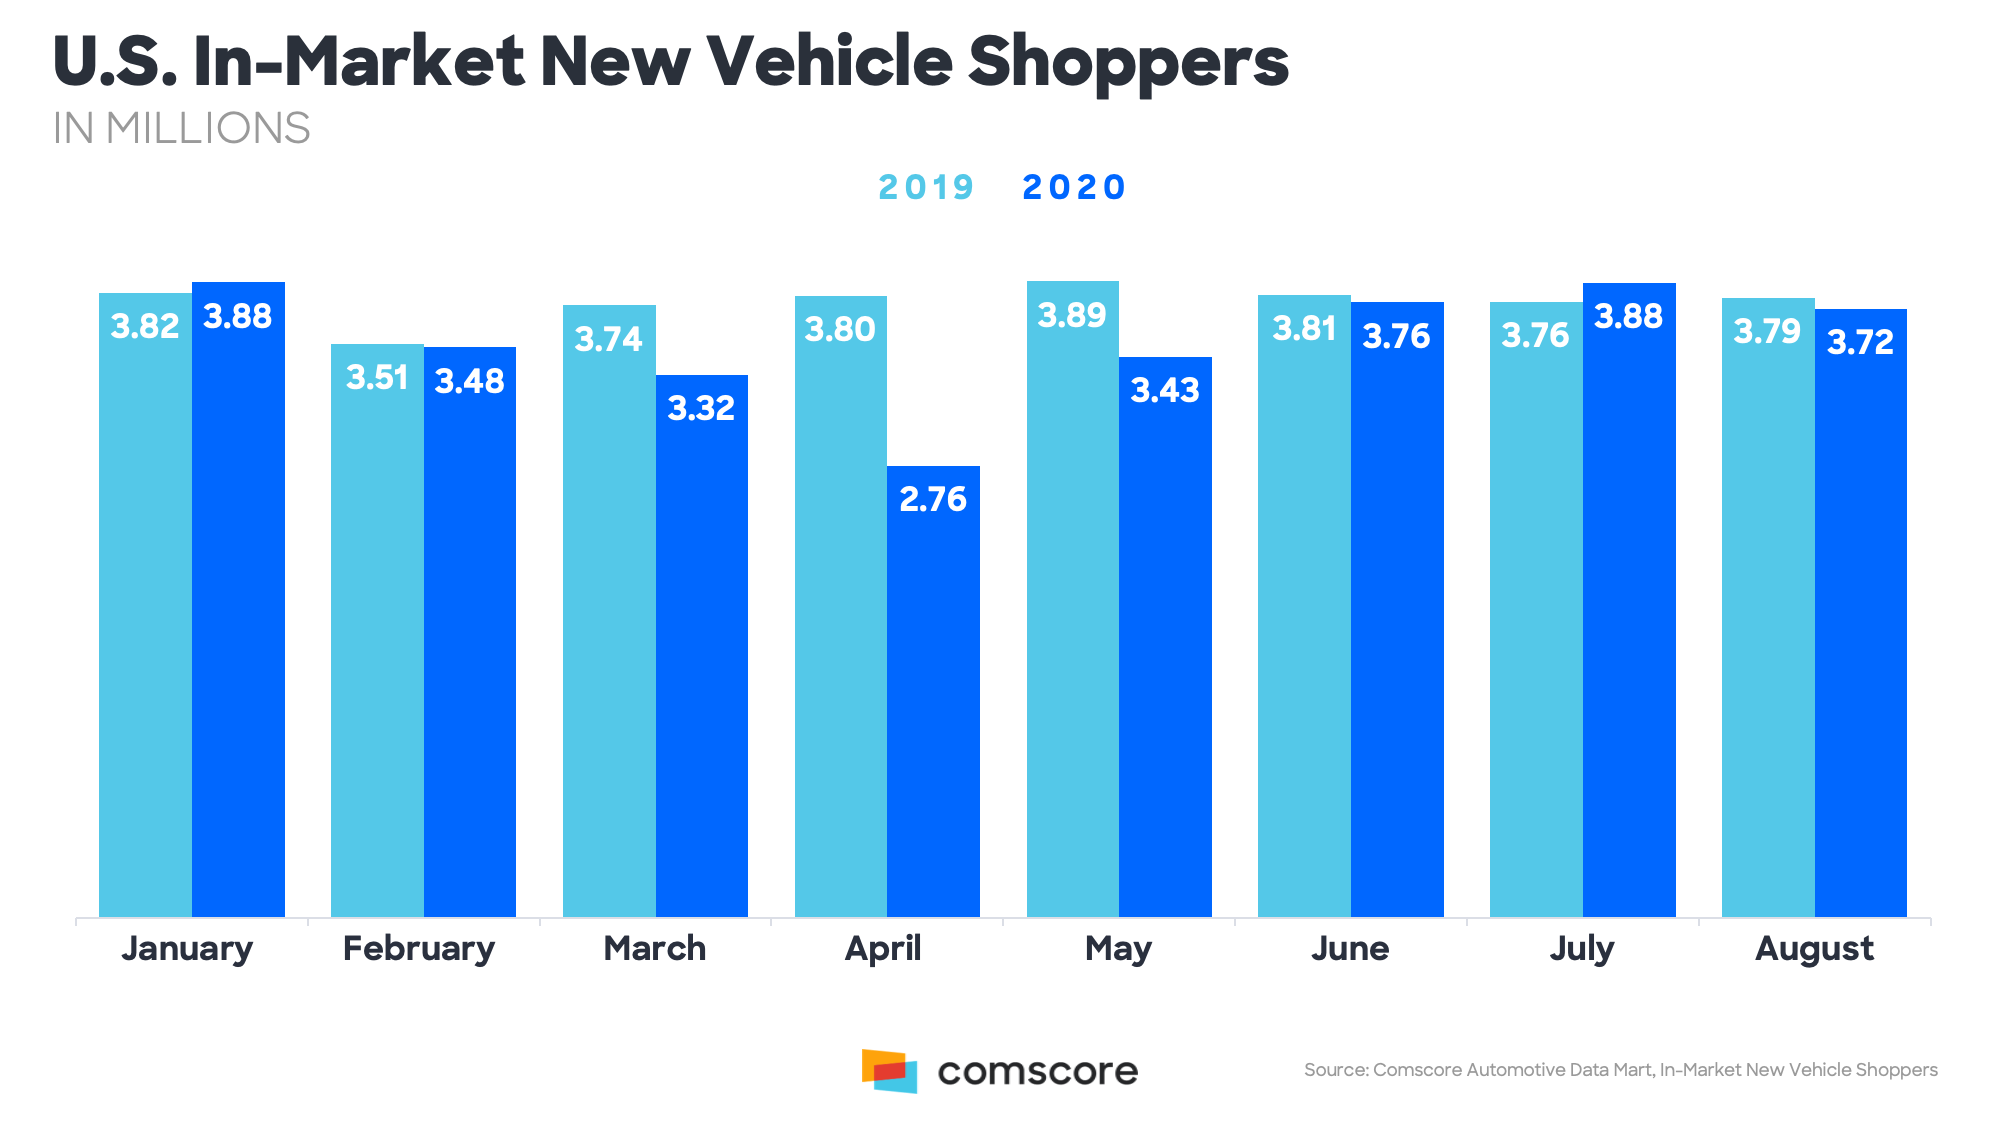 US In-Market New Vehicle Shoppers